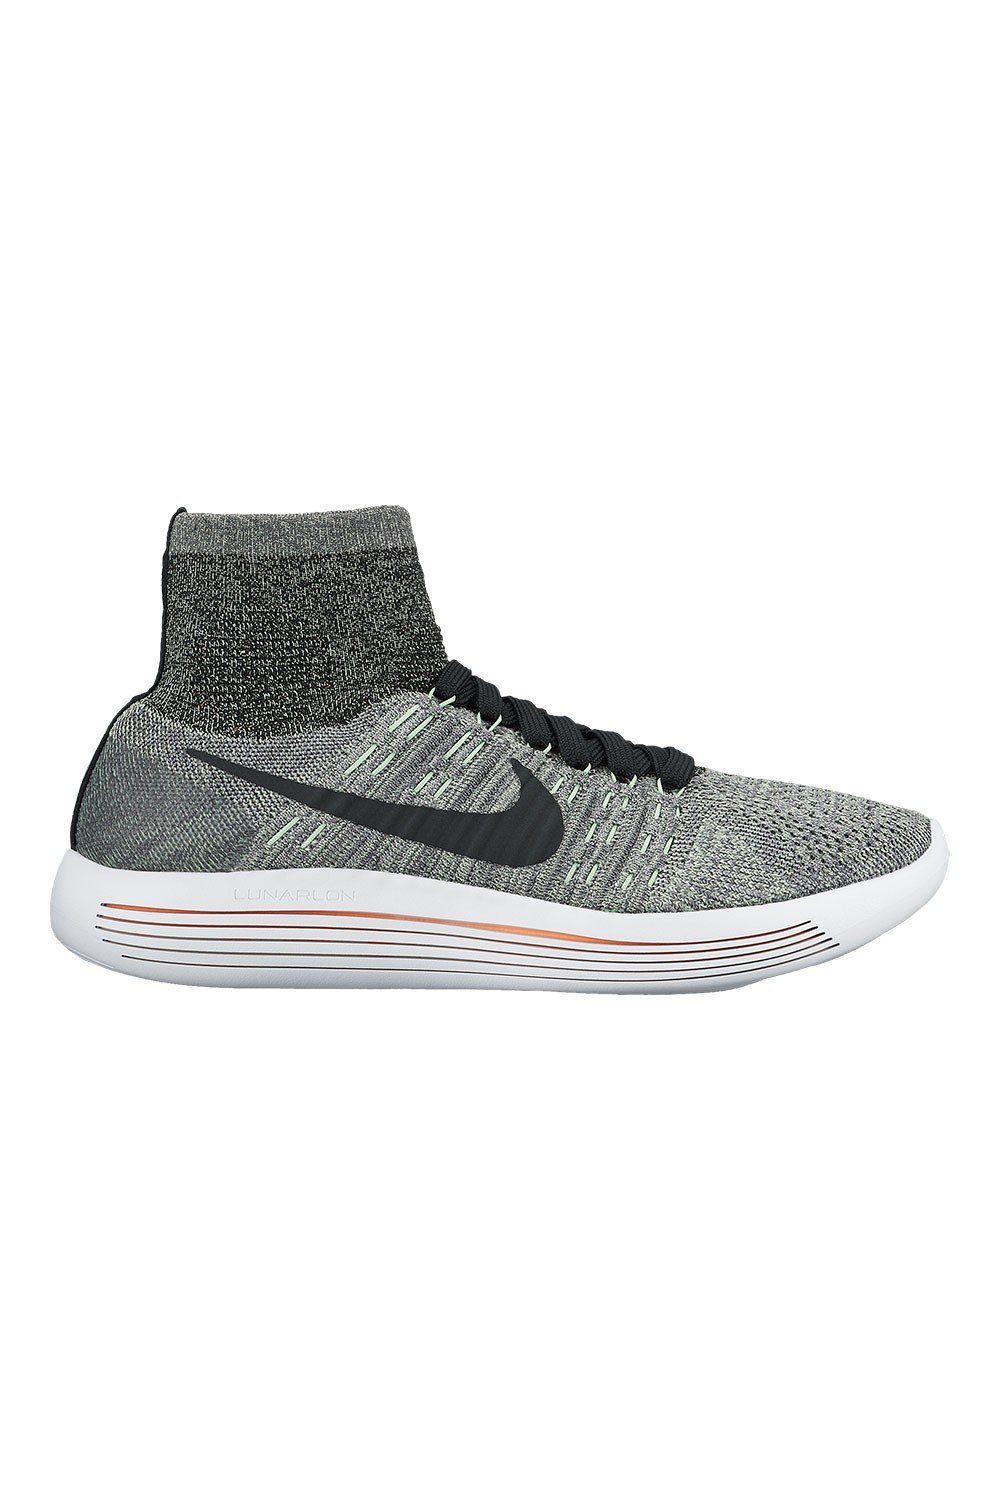 d7168fa04f27e Galleon - Nike Womens Lunarepic Flyknit 818677 013 Dark Grey Black-Cool Grey  (9.5)